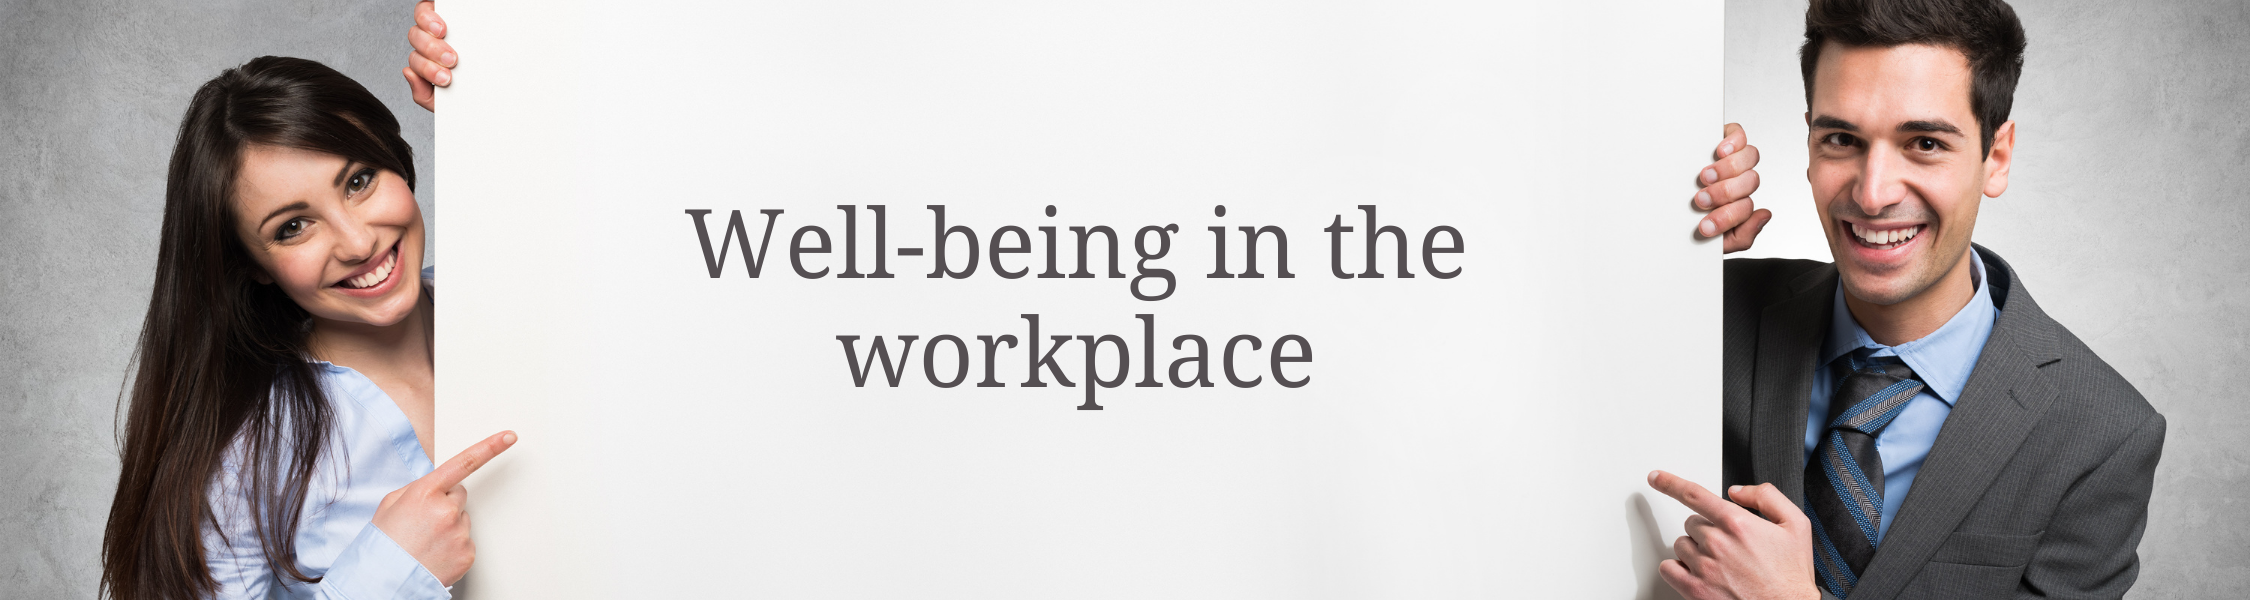 well-being at workplace